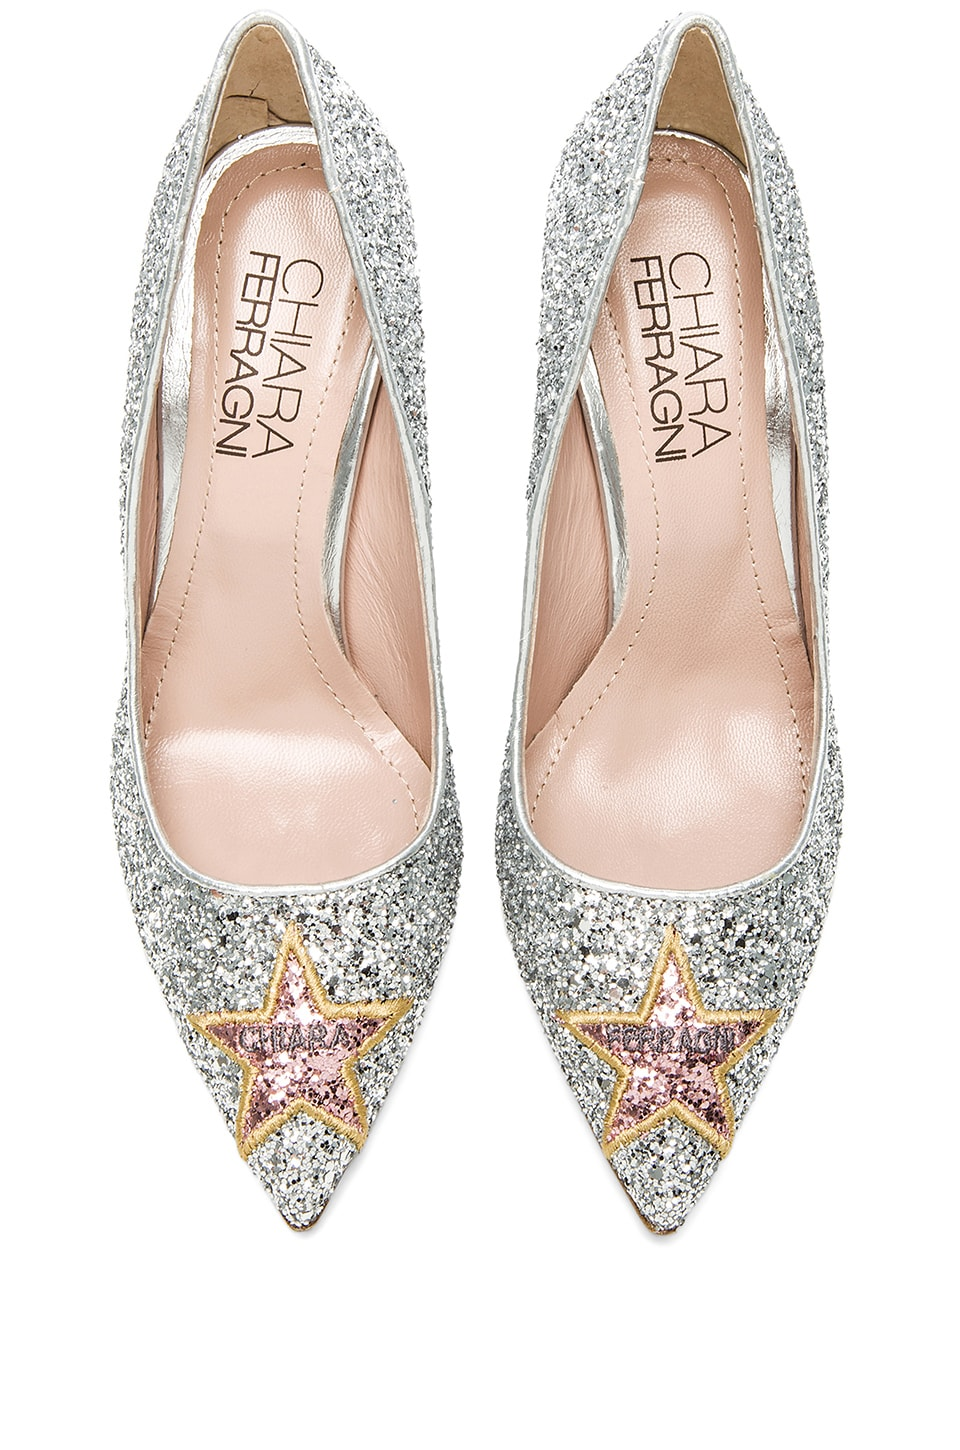 Chiara Ferragni Star Pump in Silver